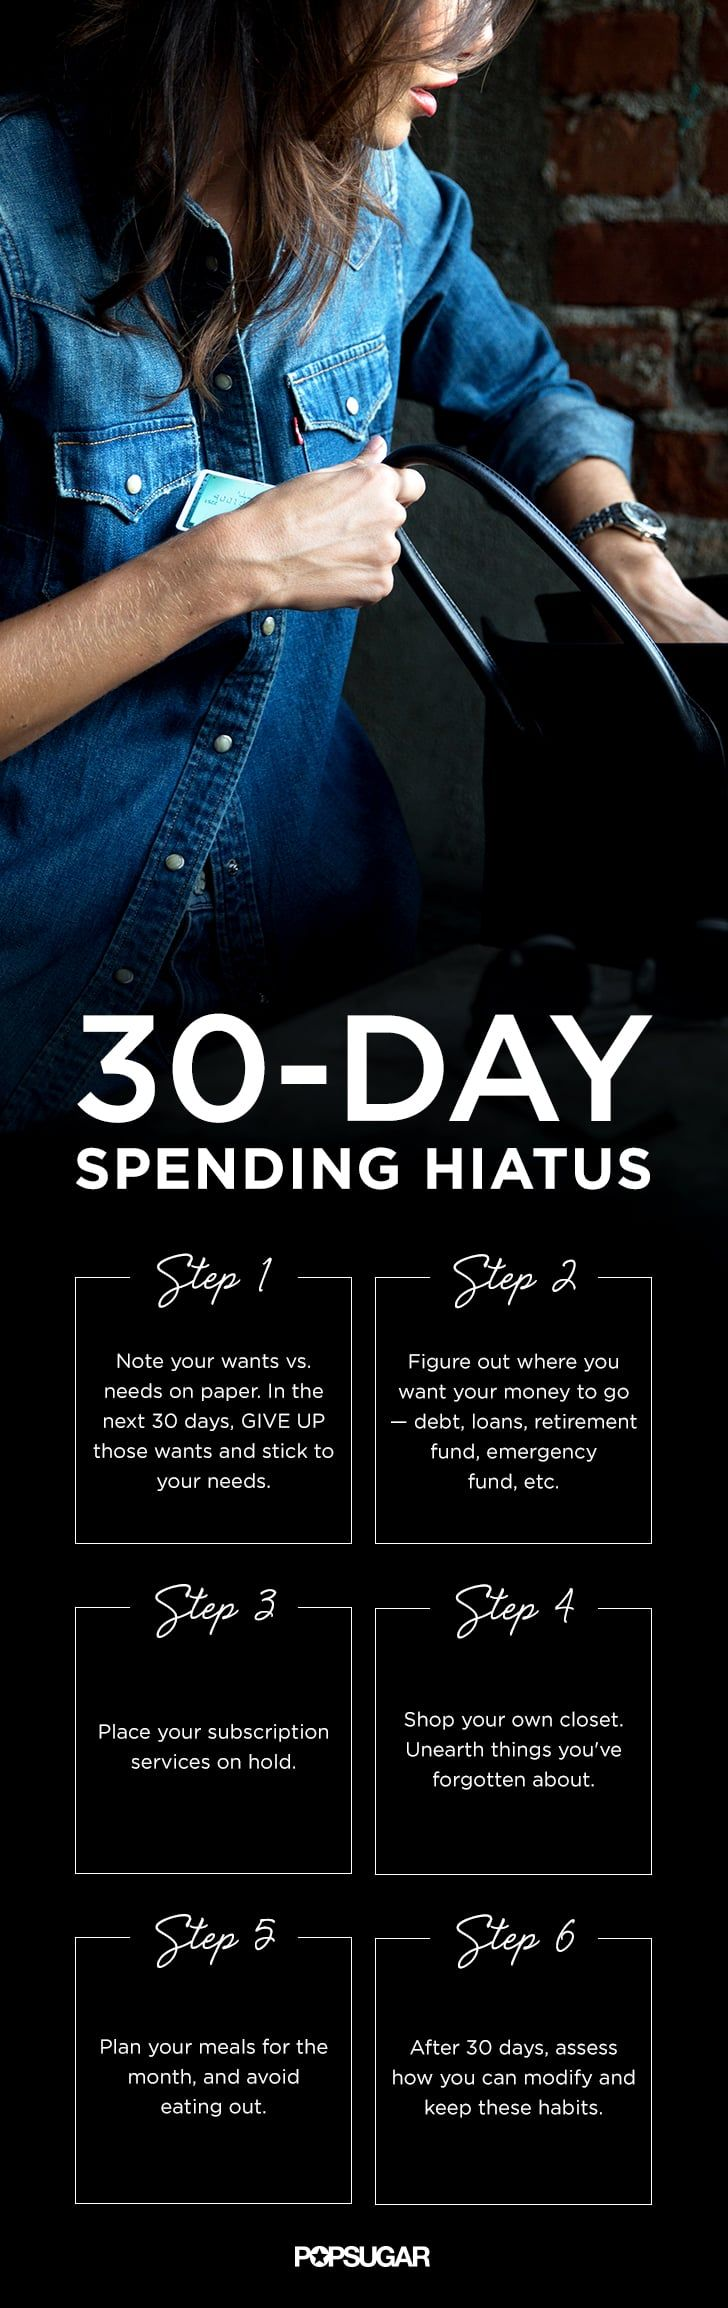 Take Charge of Your Bank Account With the 30-Day Spending Hiatus